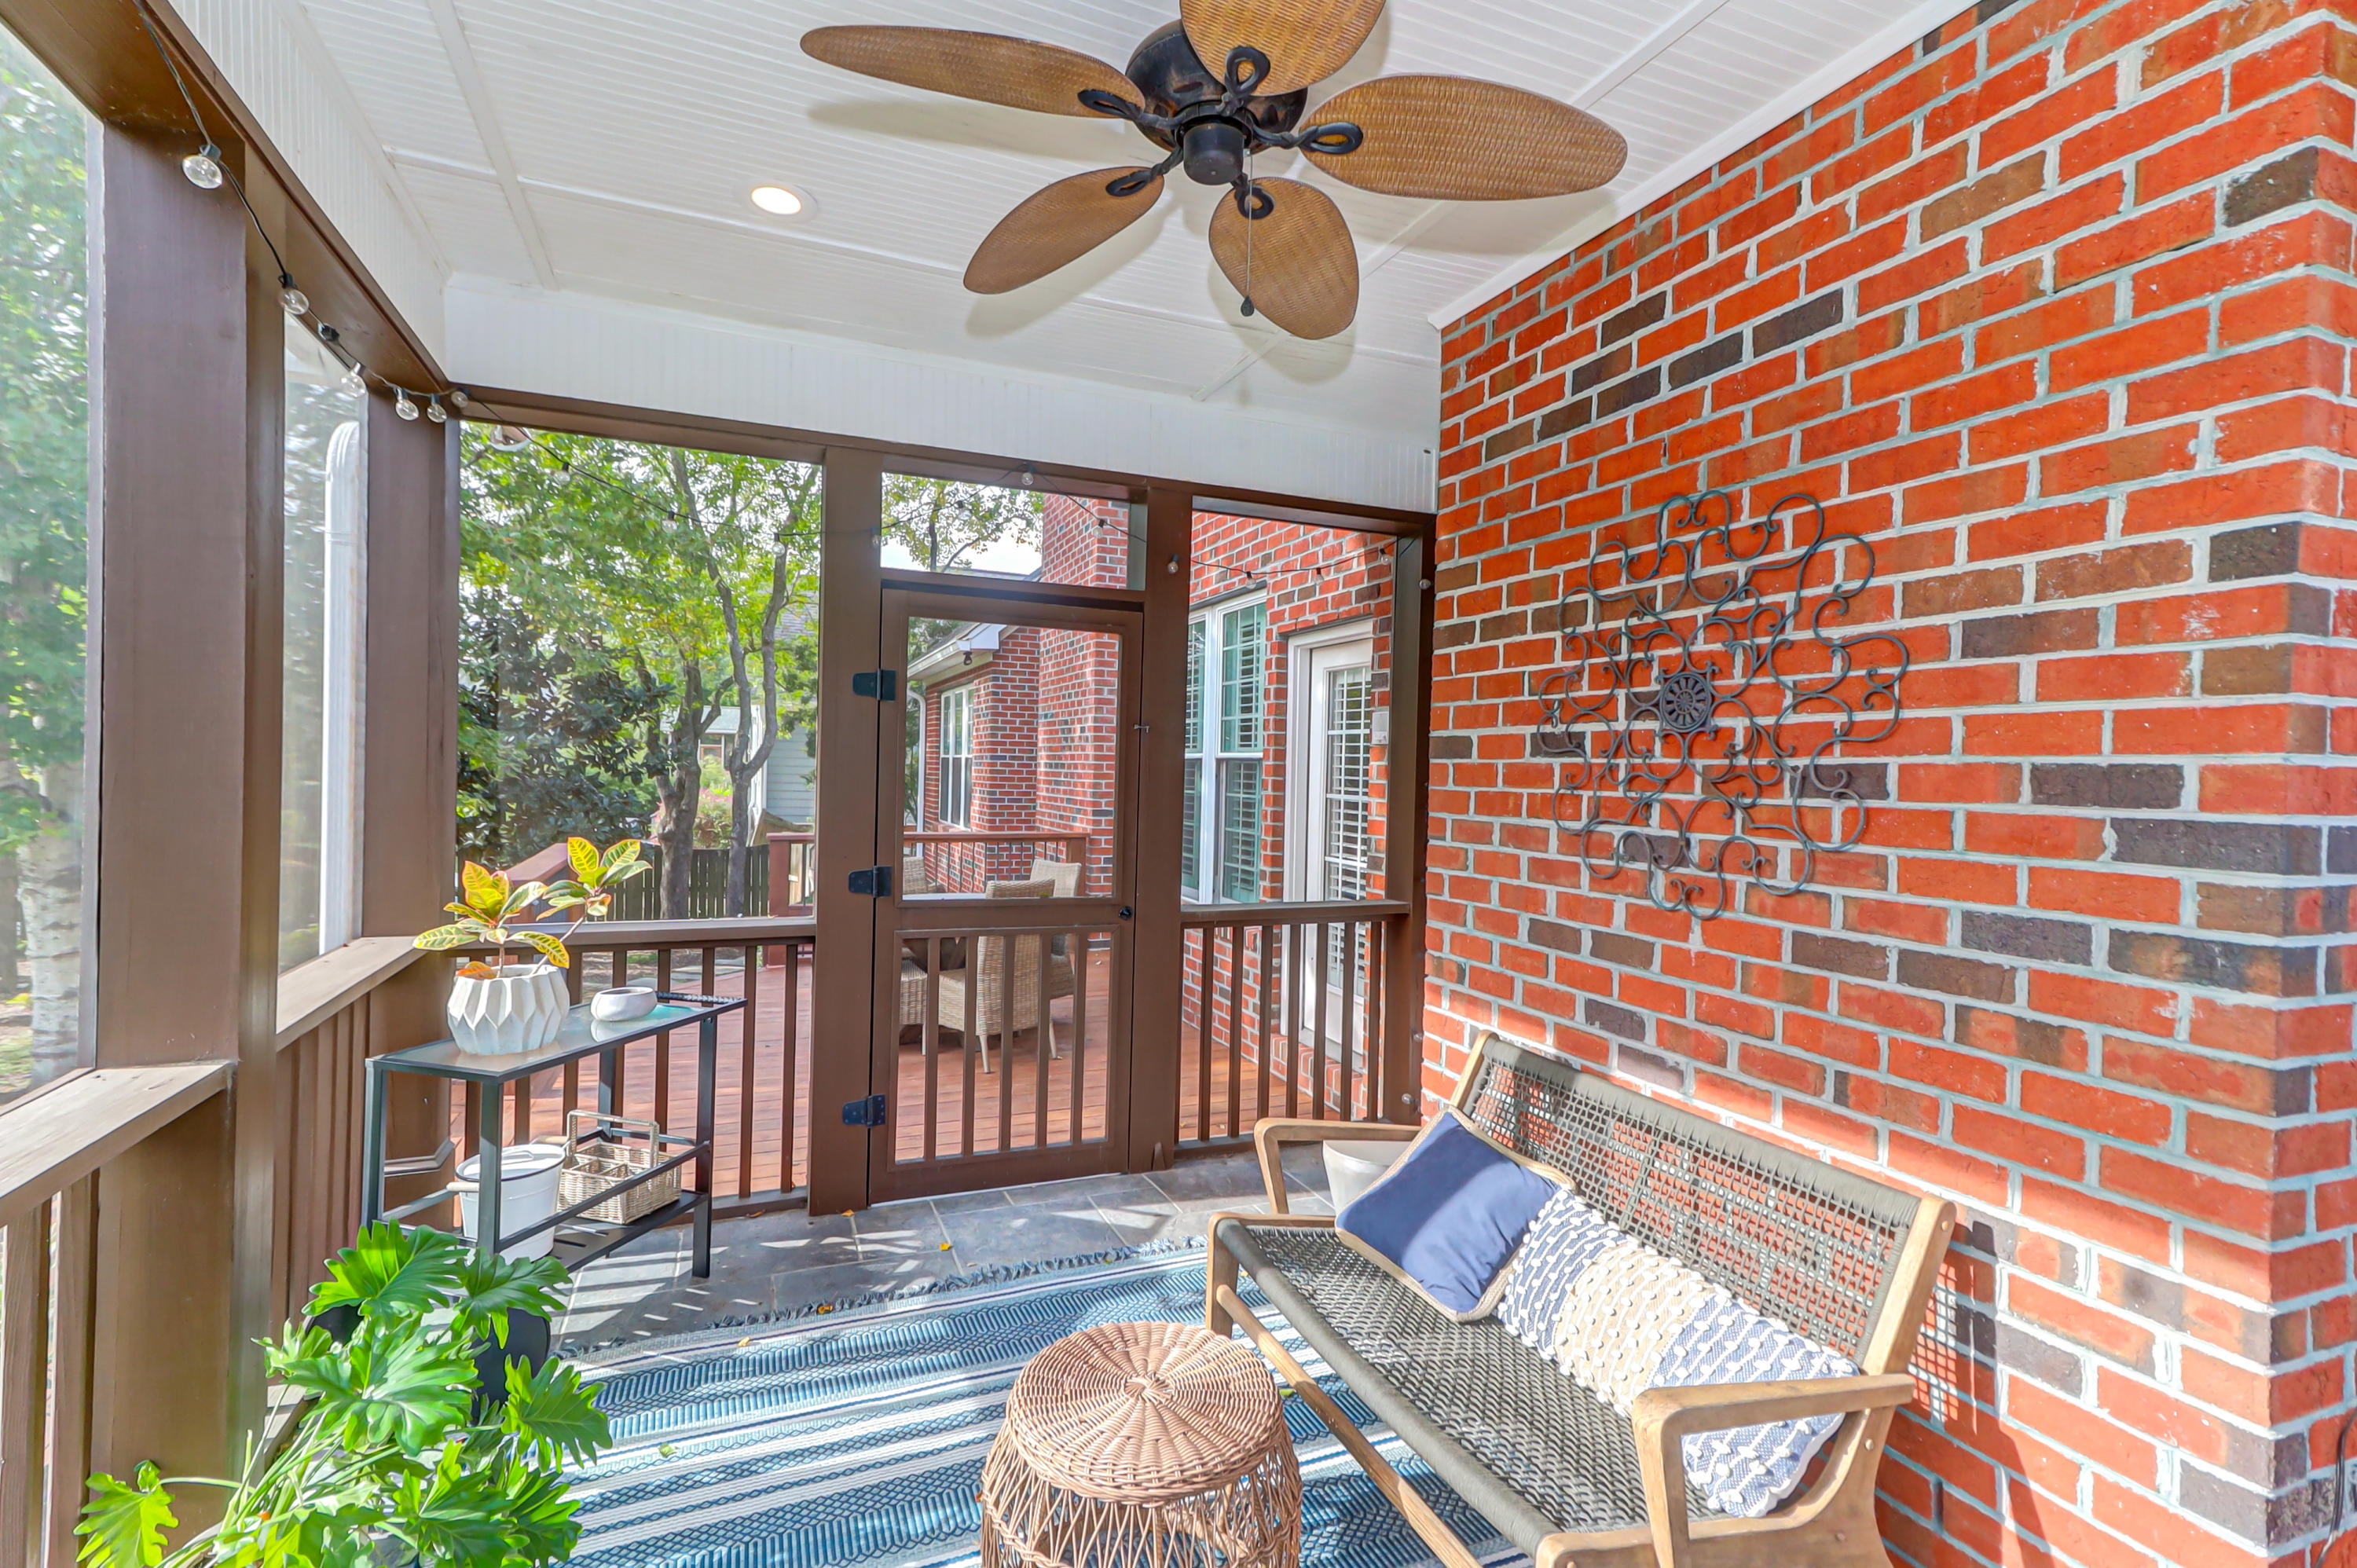 Woodward Pointe Homes For Sale - 657 White Chapel, Charleston, SC - 26